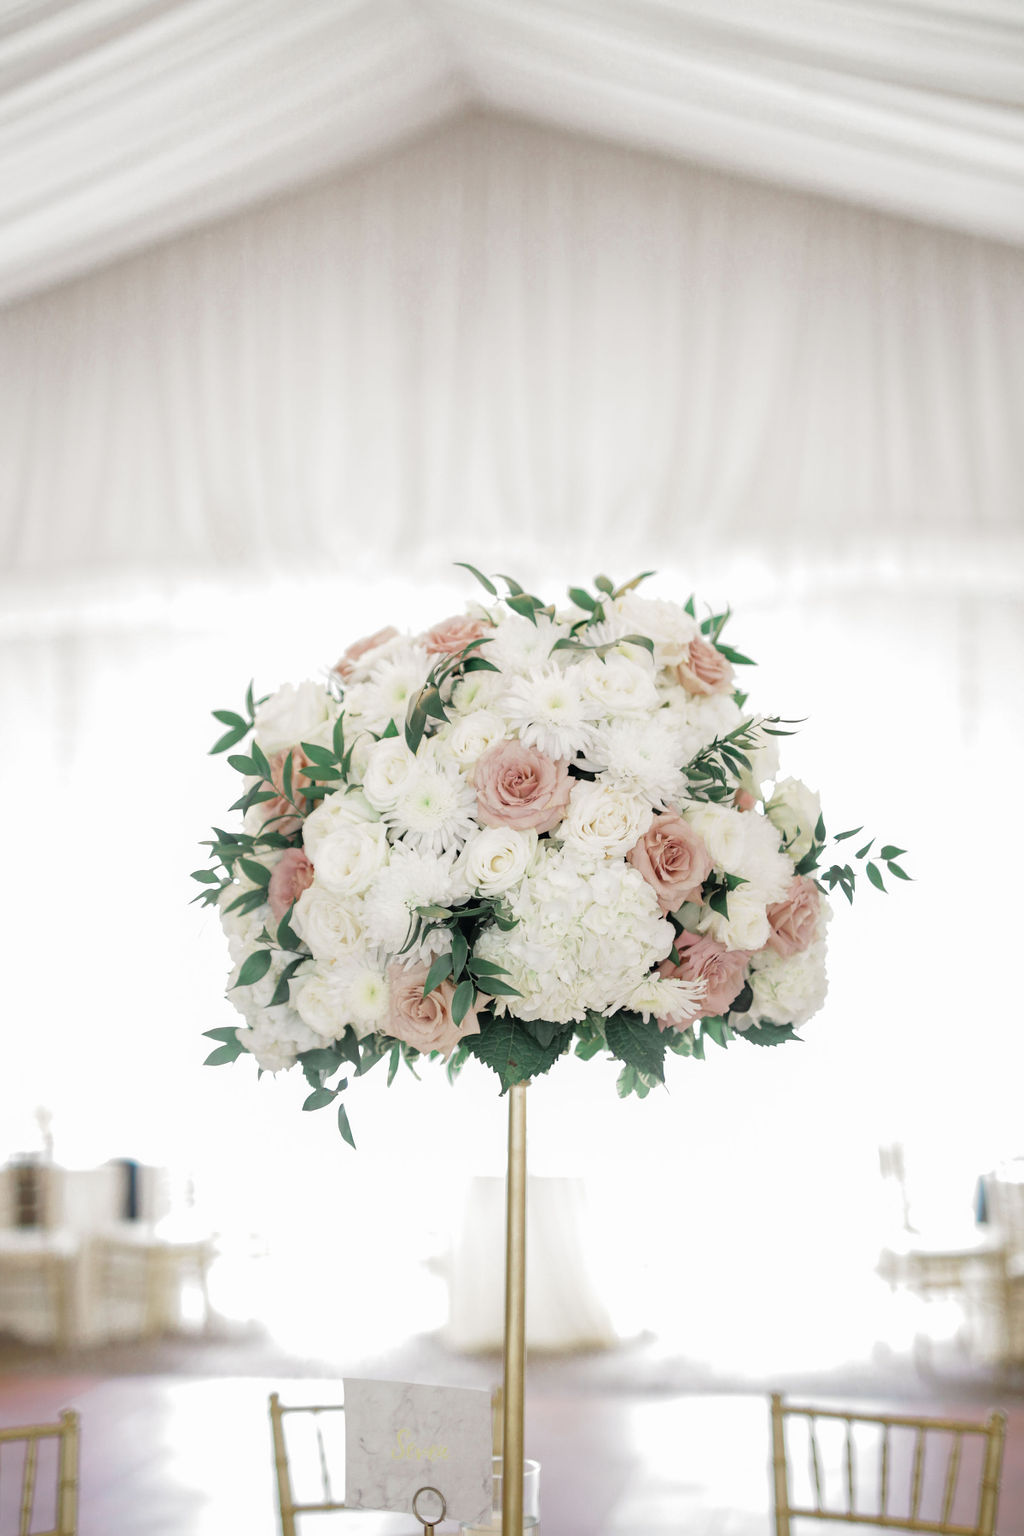 Tall pink and white wedding centerpieces: Wedding portrait by Nashville wedding photographer Maria Gloer Photography